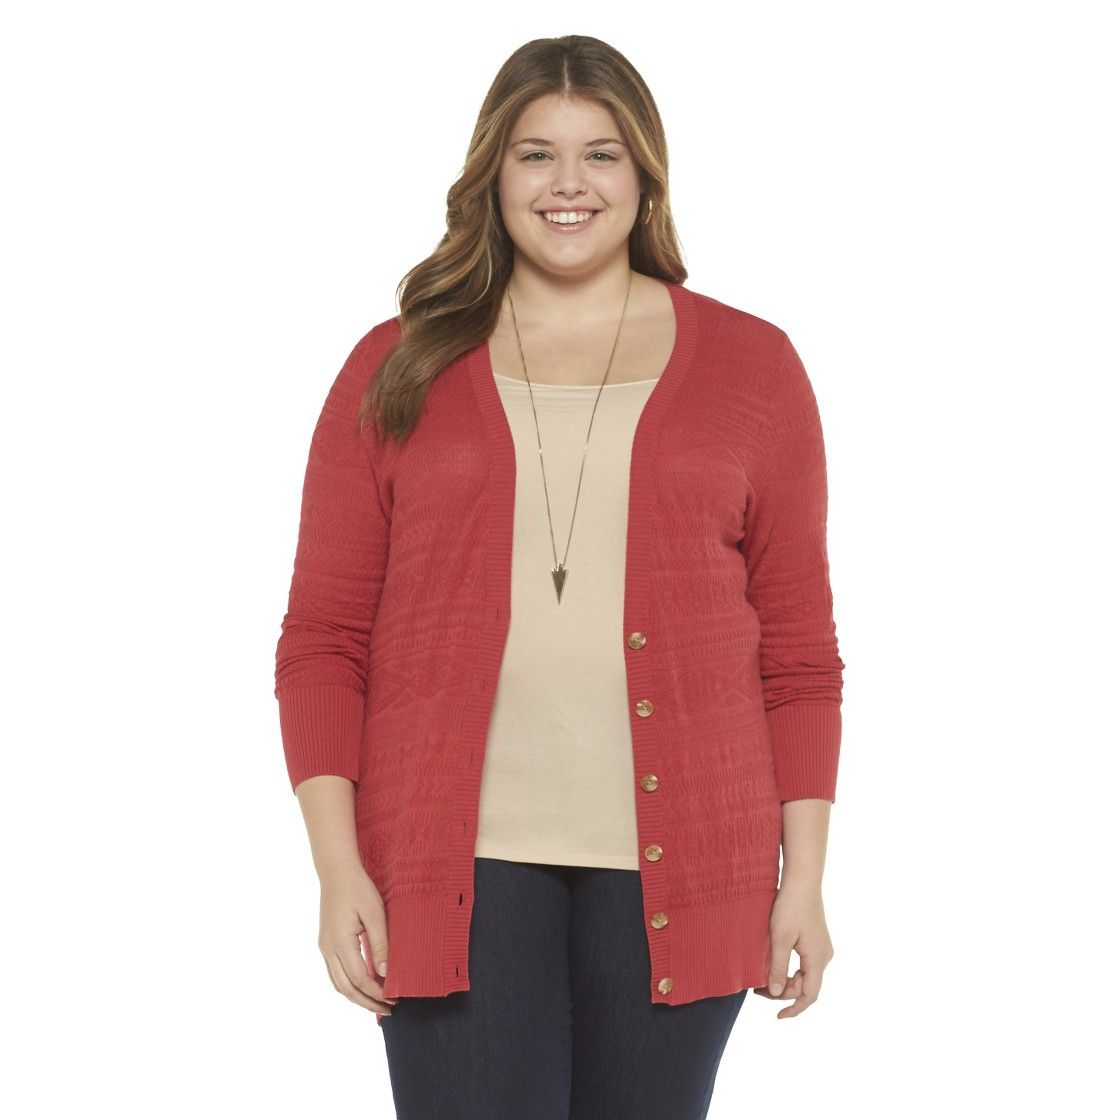 Plus Size Long Sleeve Boyfriend Cardigan Sweater Red -Mossimo ...